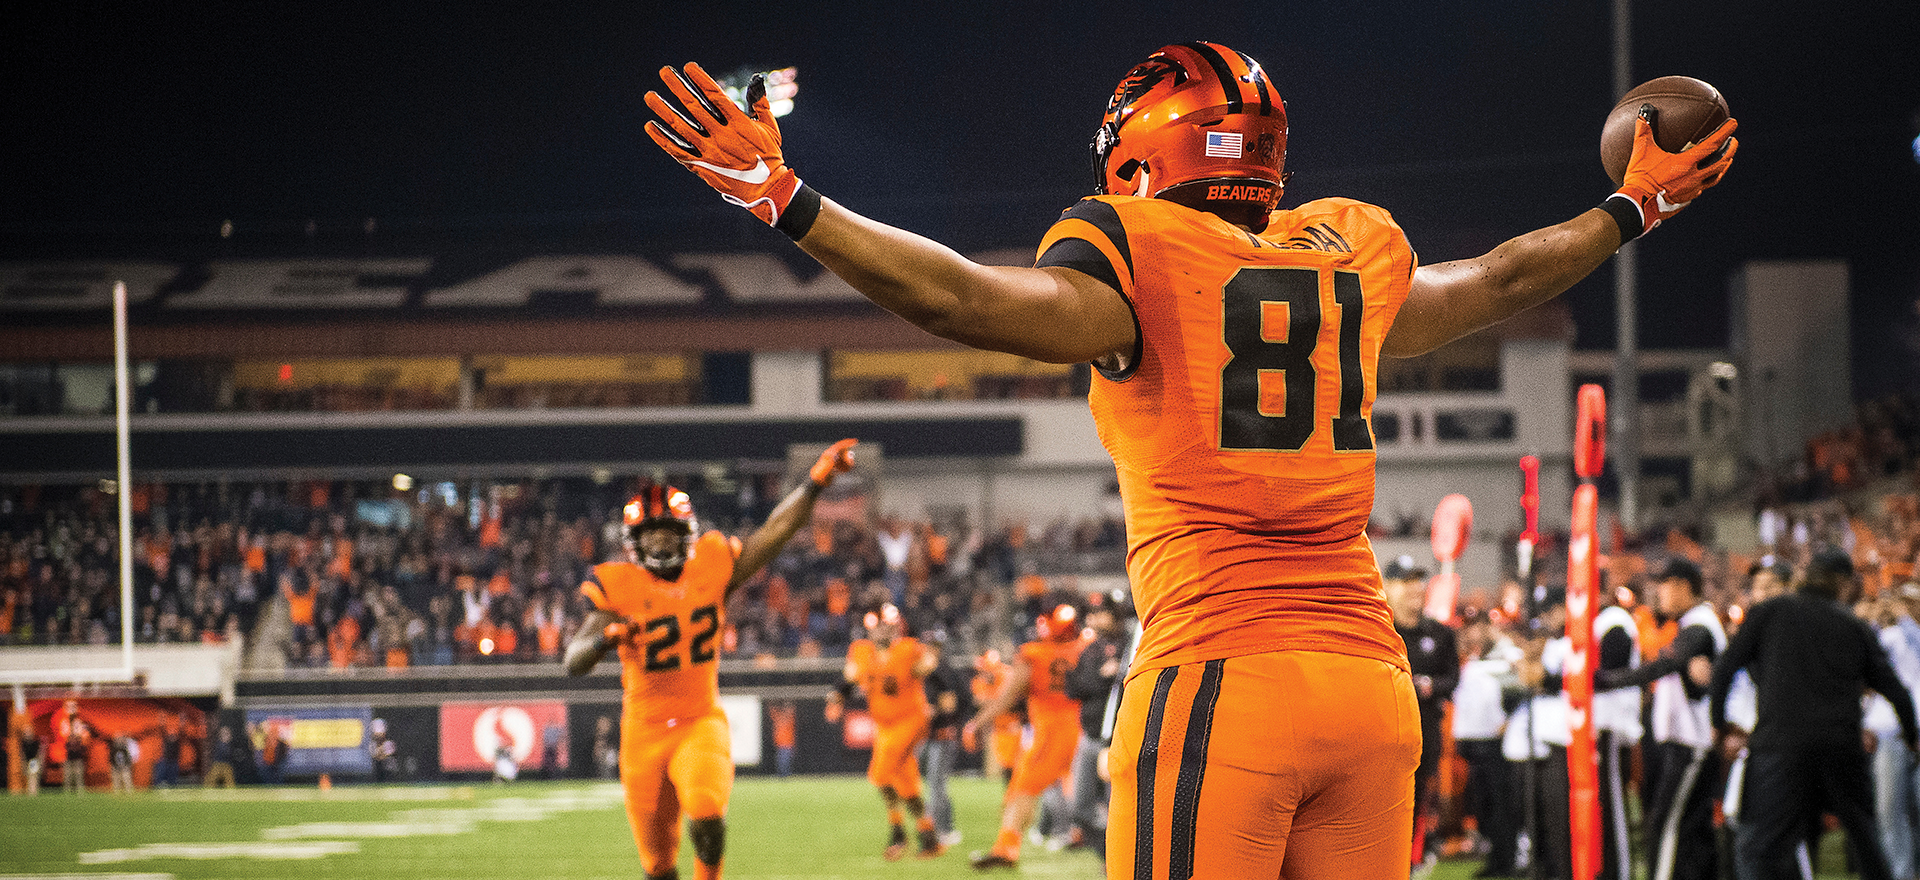 Football player on a football field during a game in orange jersey with back facing camera. His arms are raised up and it's night time.